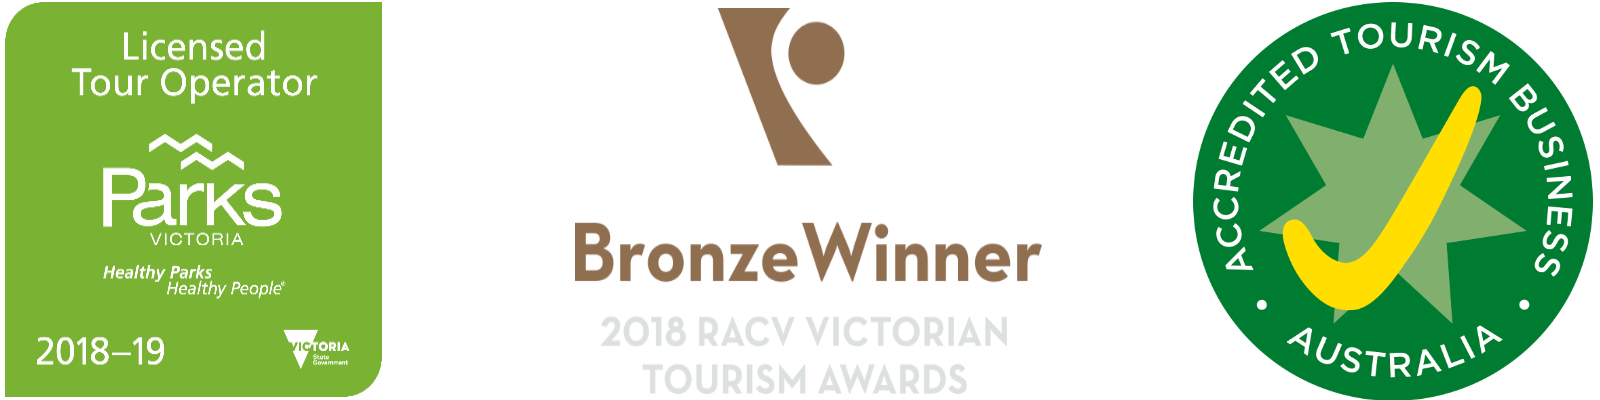 Award Winning Accredited Tourism Business